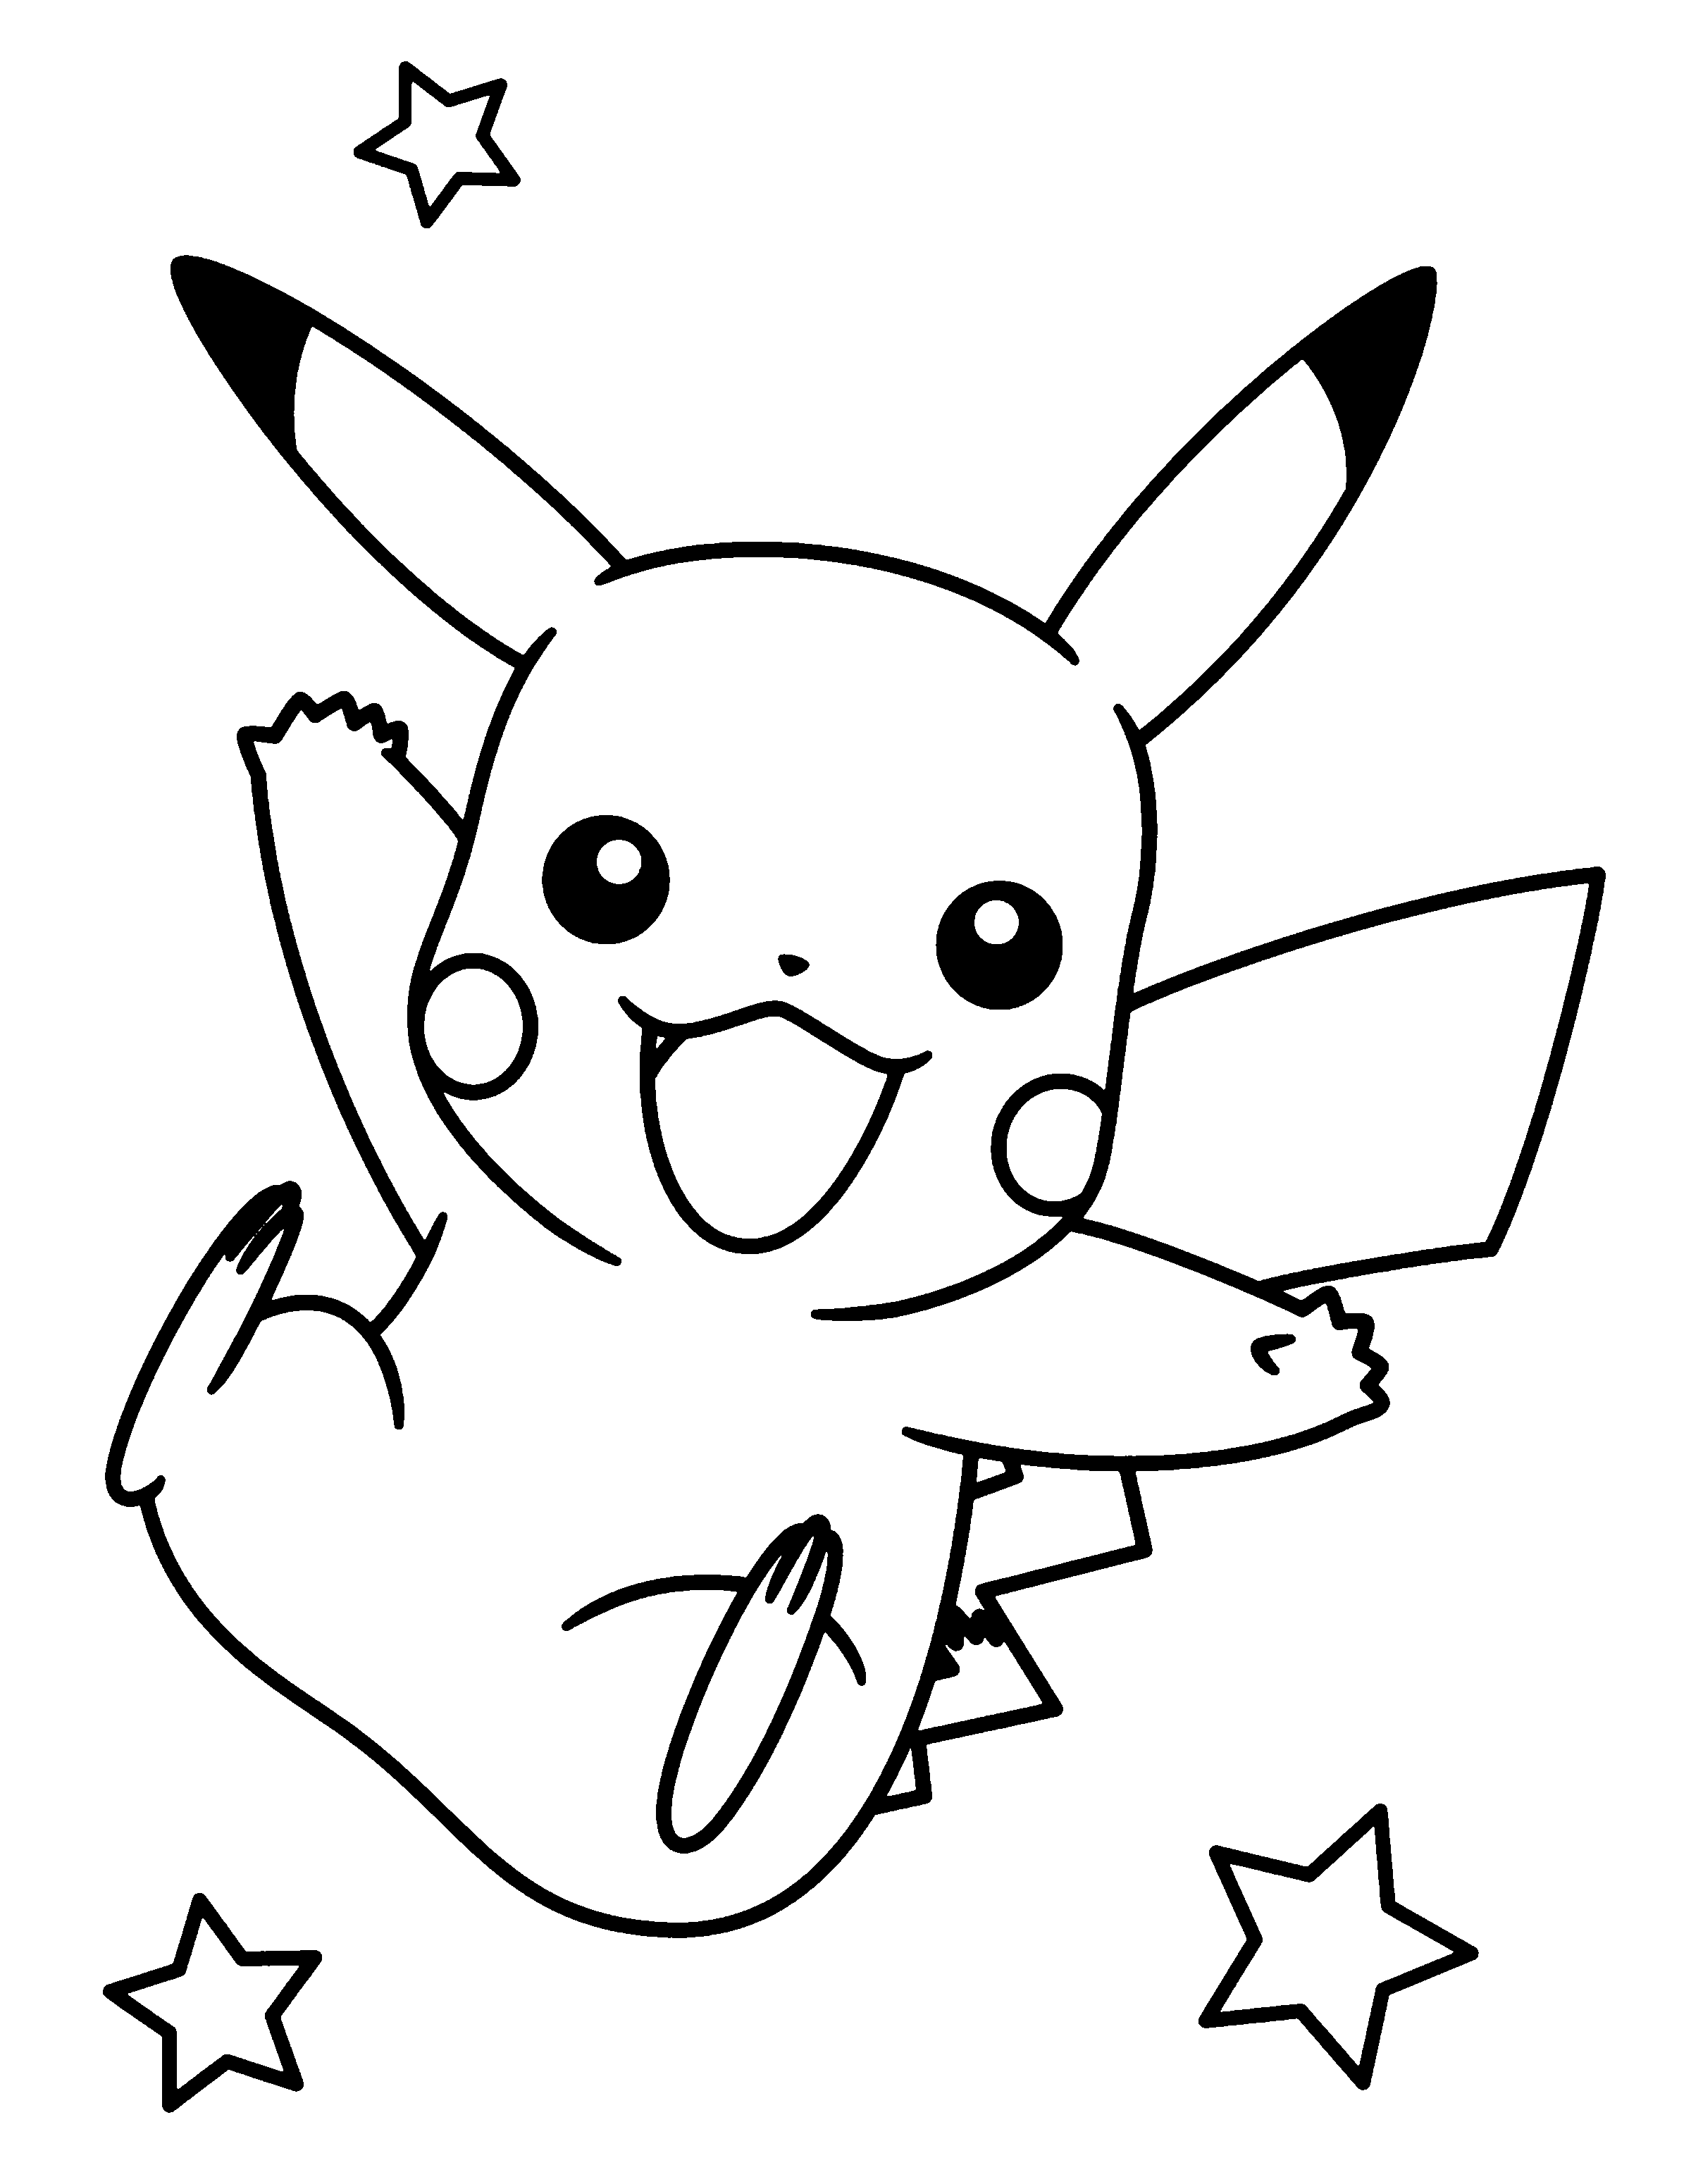 Ausmalbilder Kostenlos Pokemon Pikachu : Pokemon Diamond Pearl Coloring Pages 65 Png 2400 3100 Pikachu